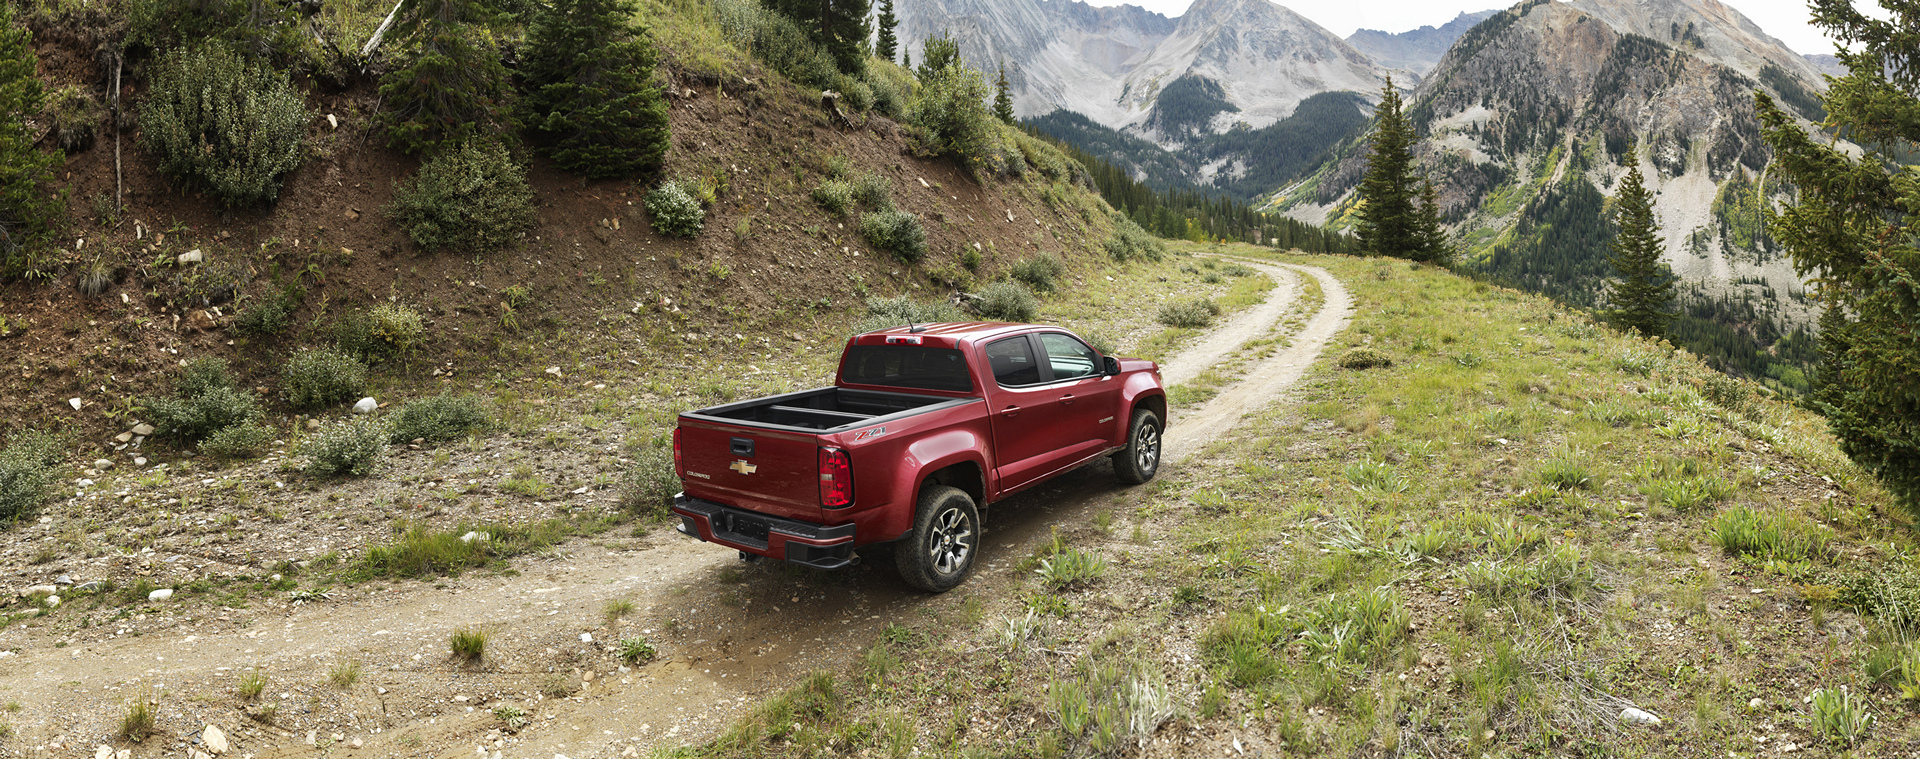 2016 Chevrolet Colorado Z71 © General Motors